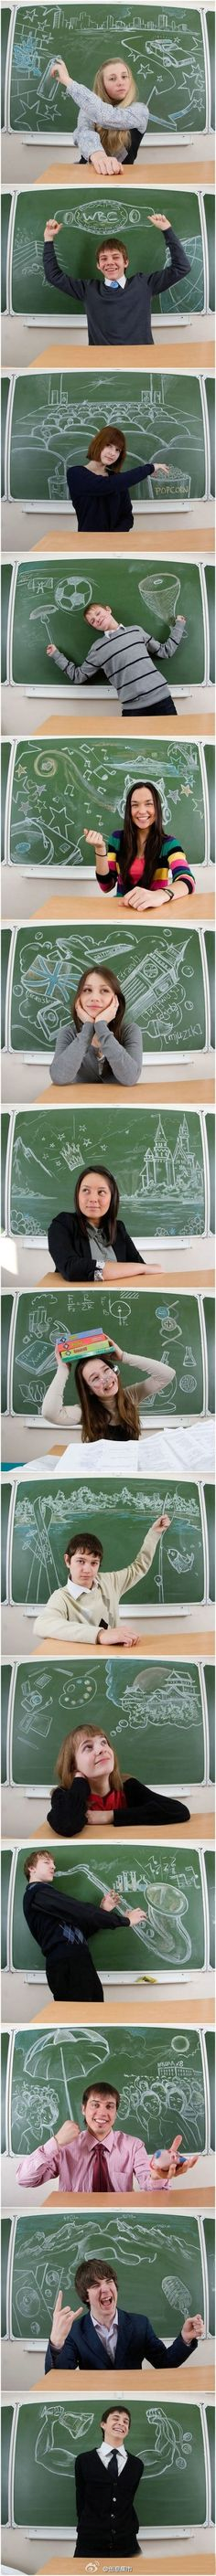 "Now here's an idea I really like, creative on a blackboard, thinking outside the ""board"" - great work - Bell Bela, love it"